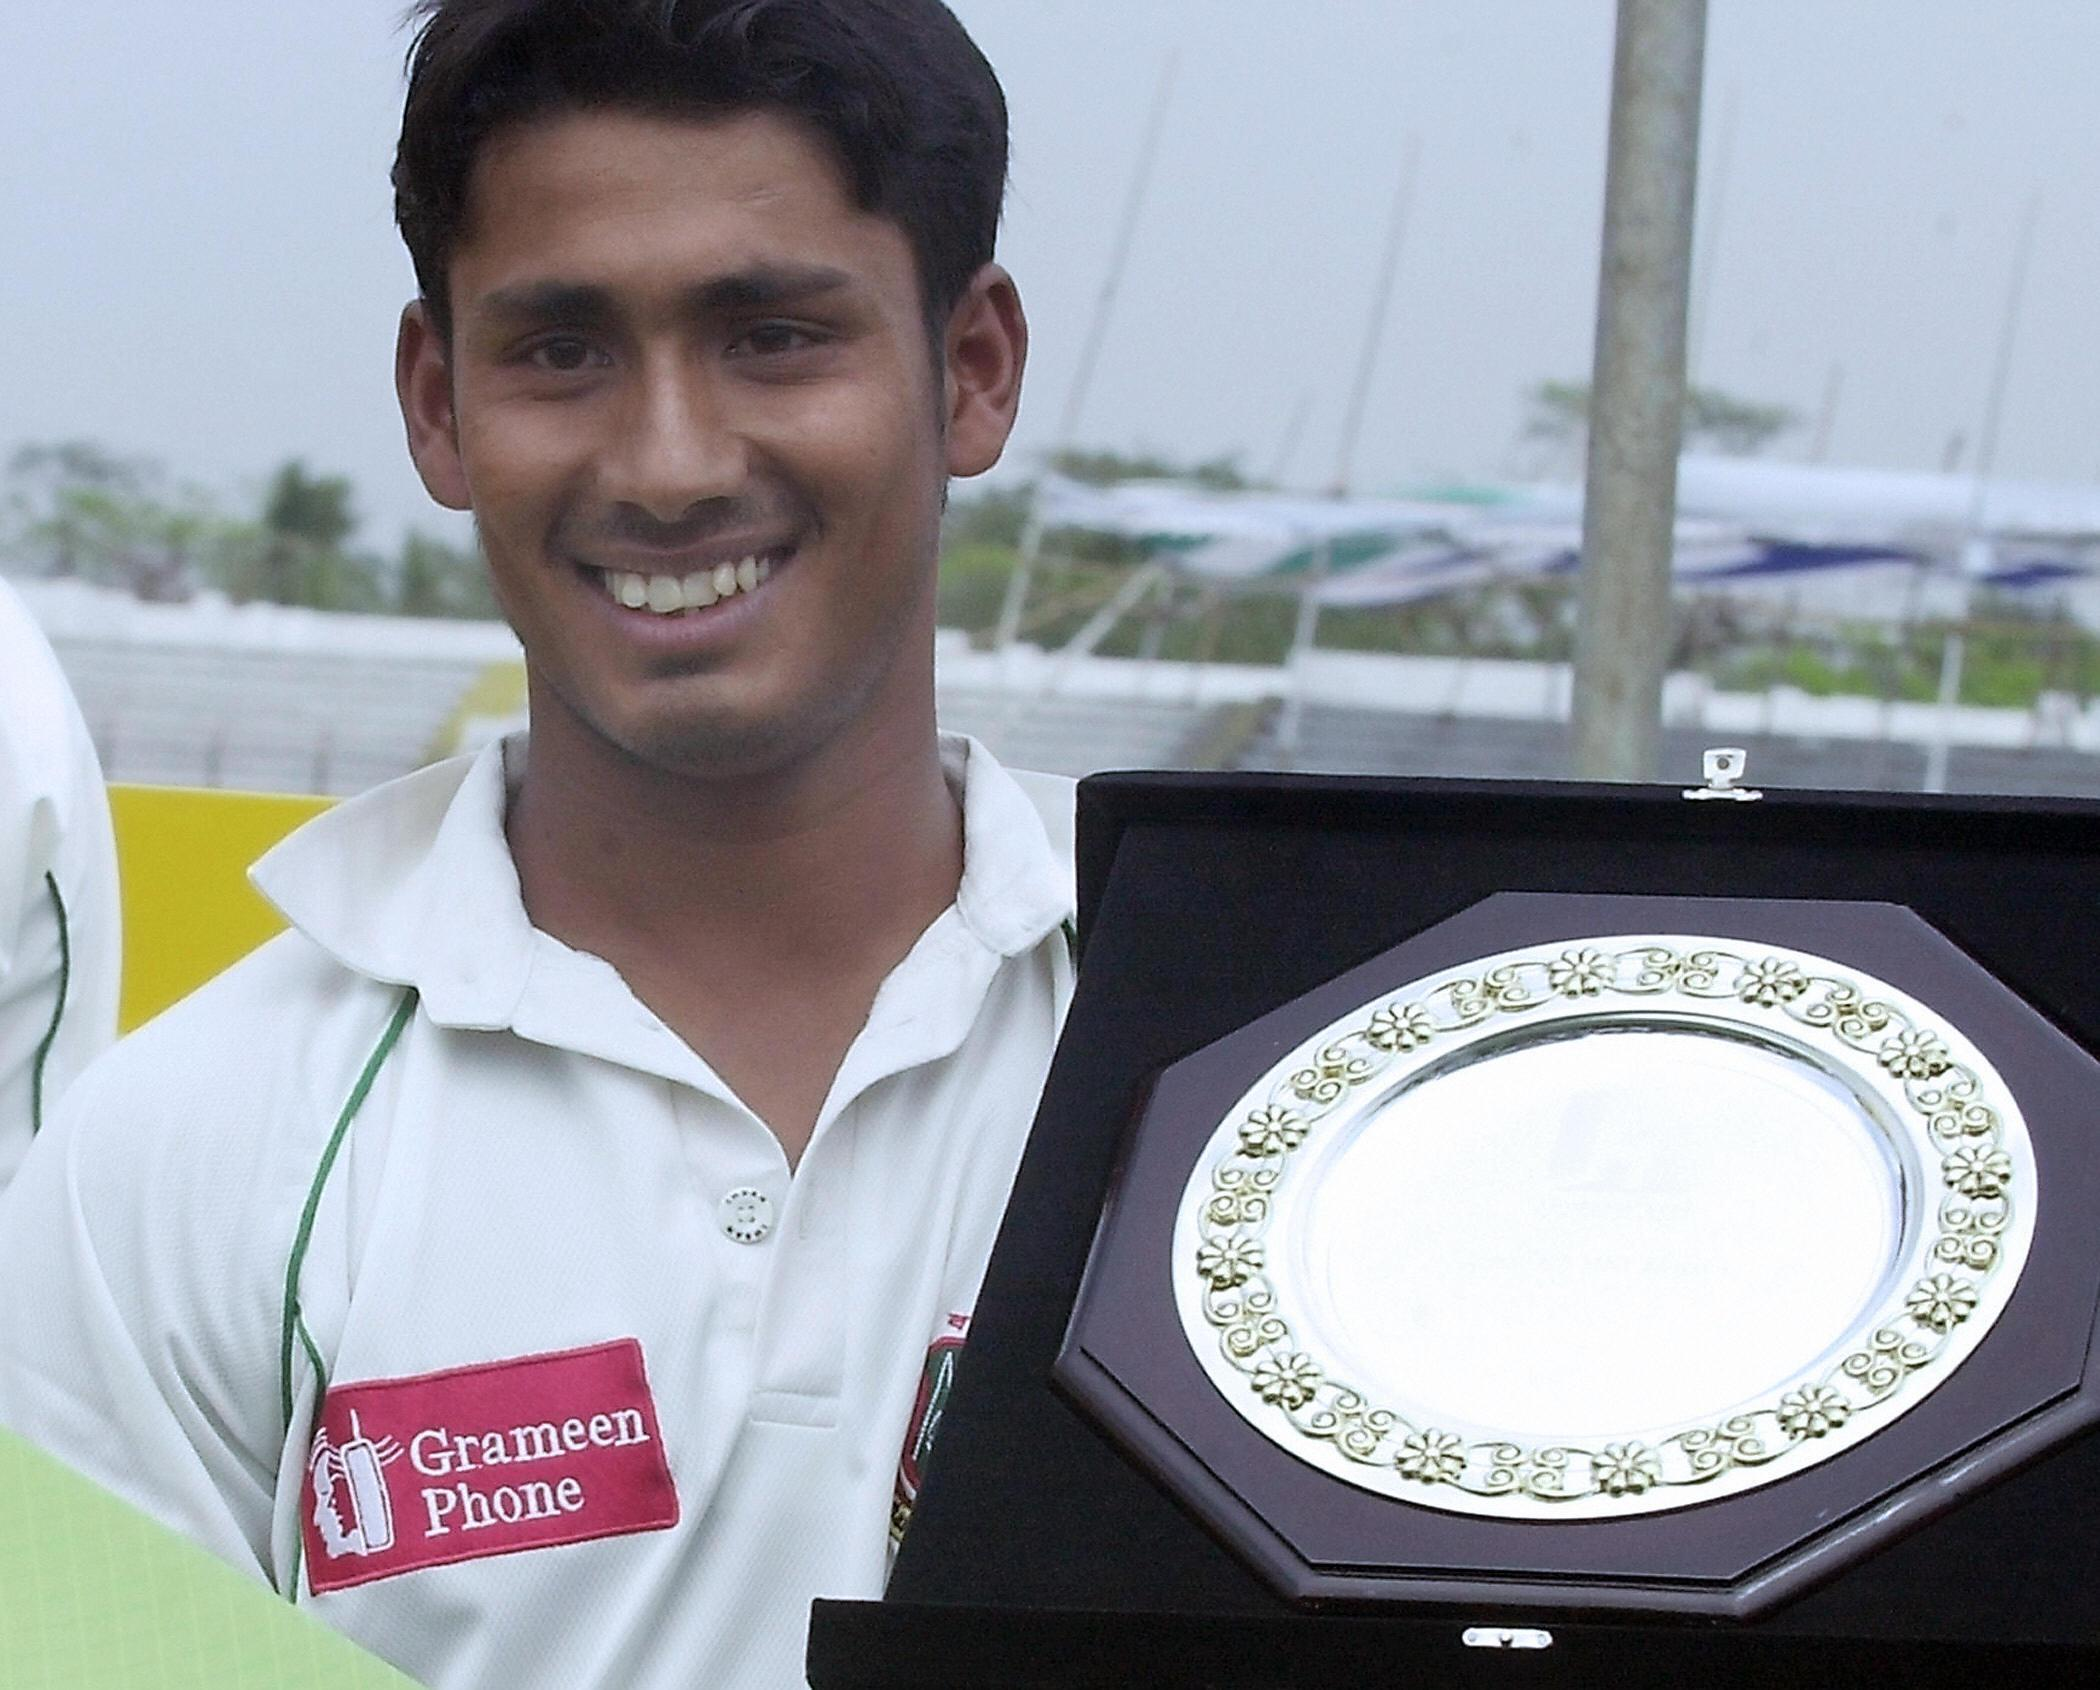 Mohammad Ashraful was the rising star of Bangladesh cricket before he was banned for match fixing